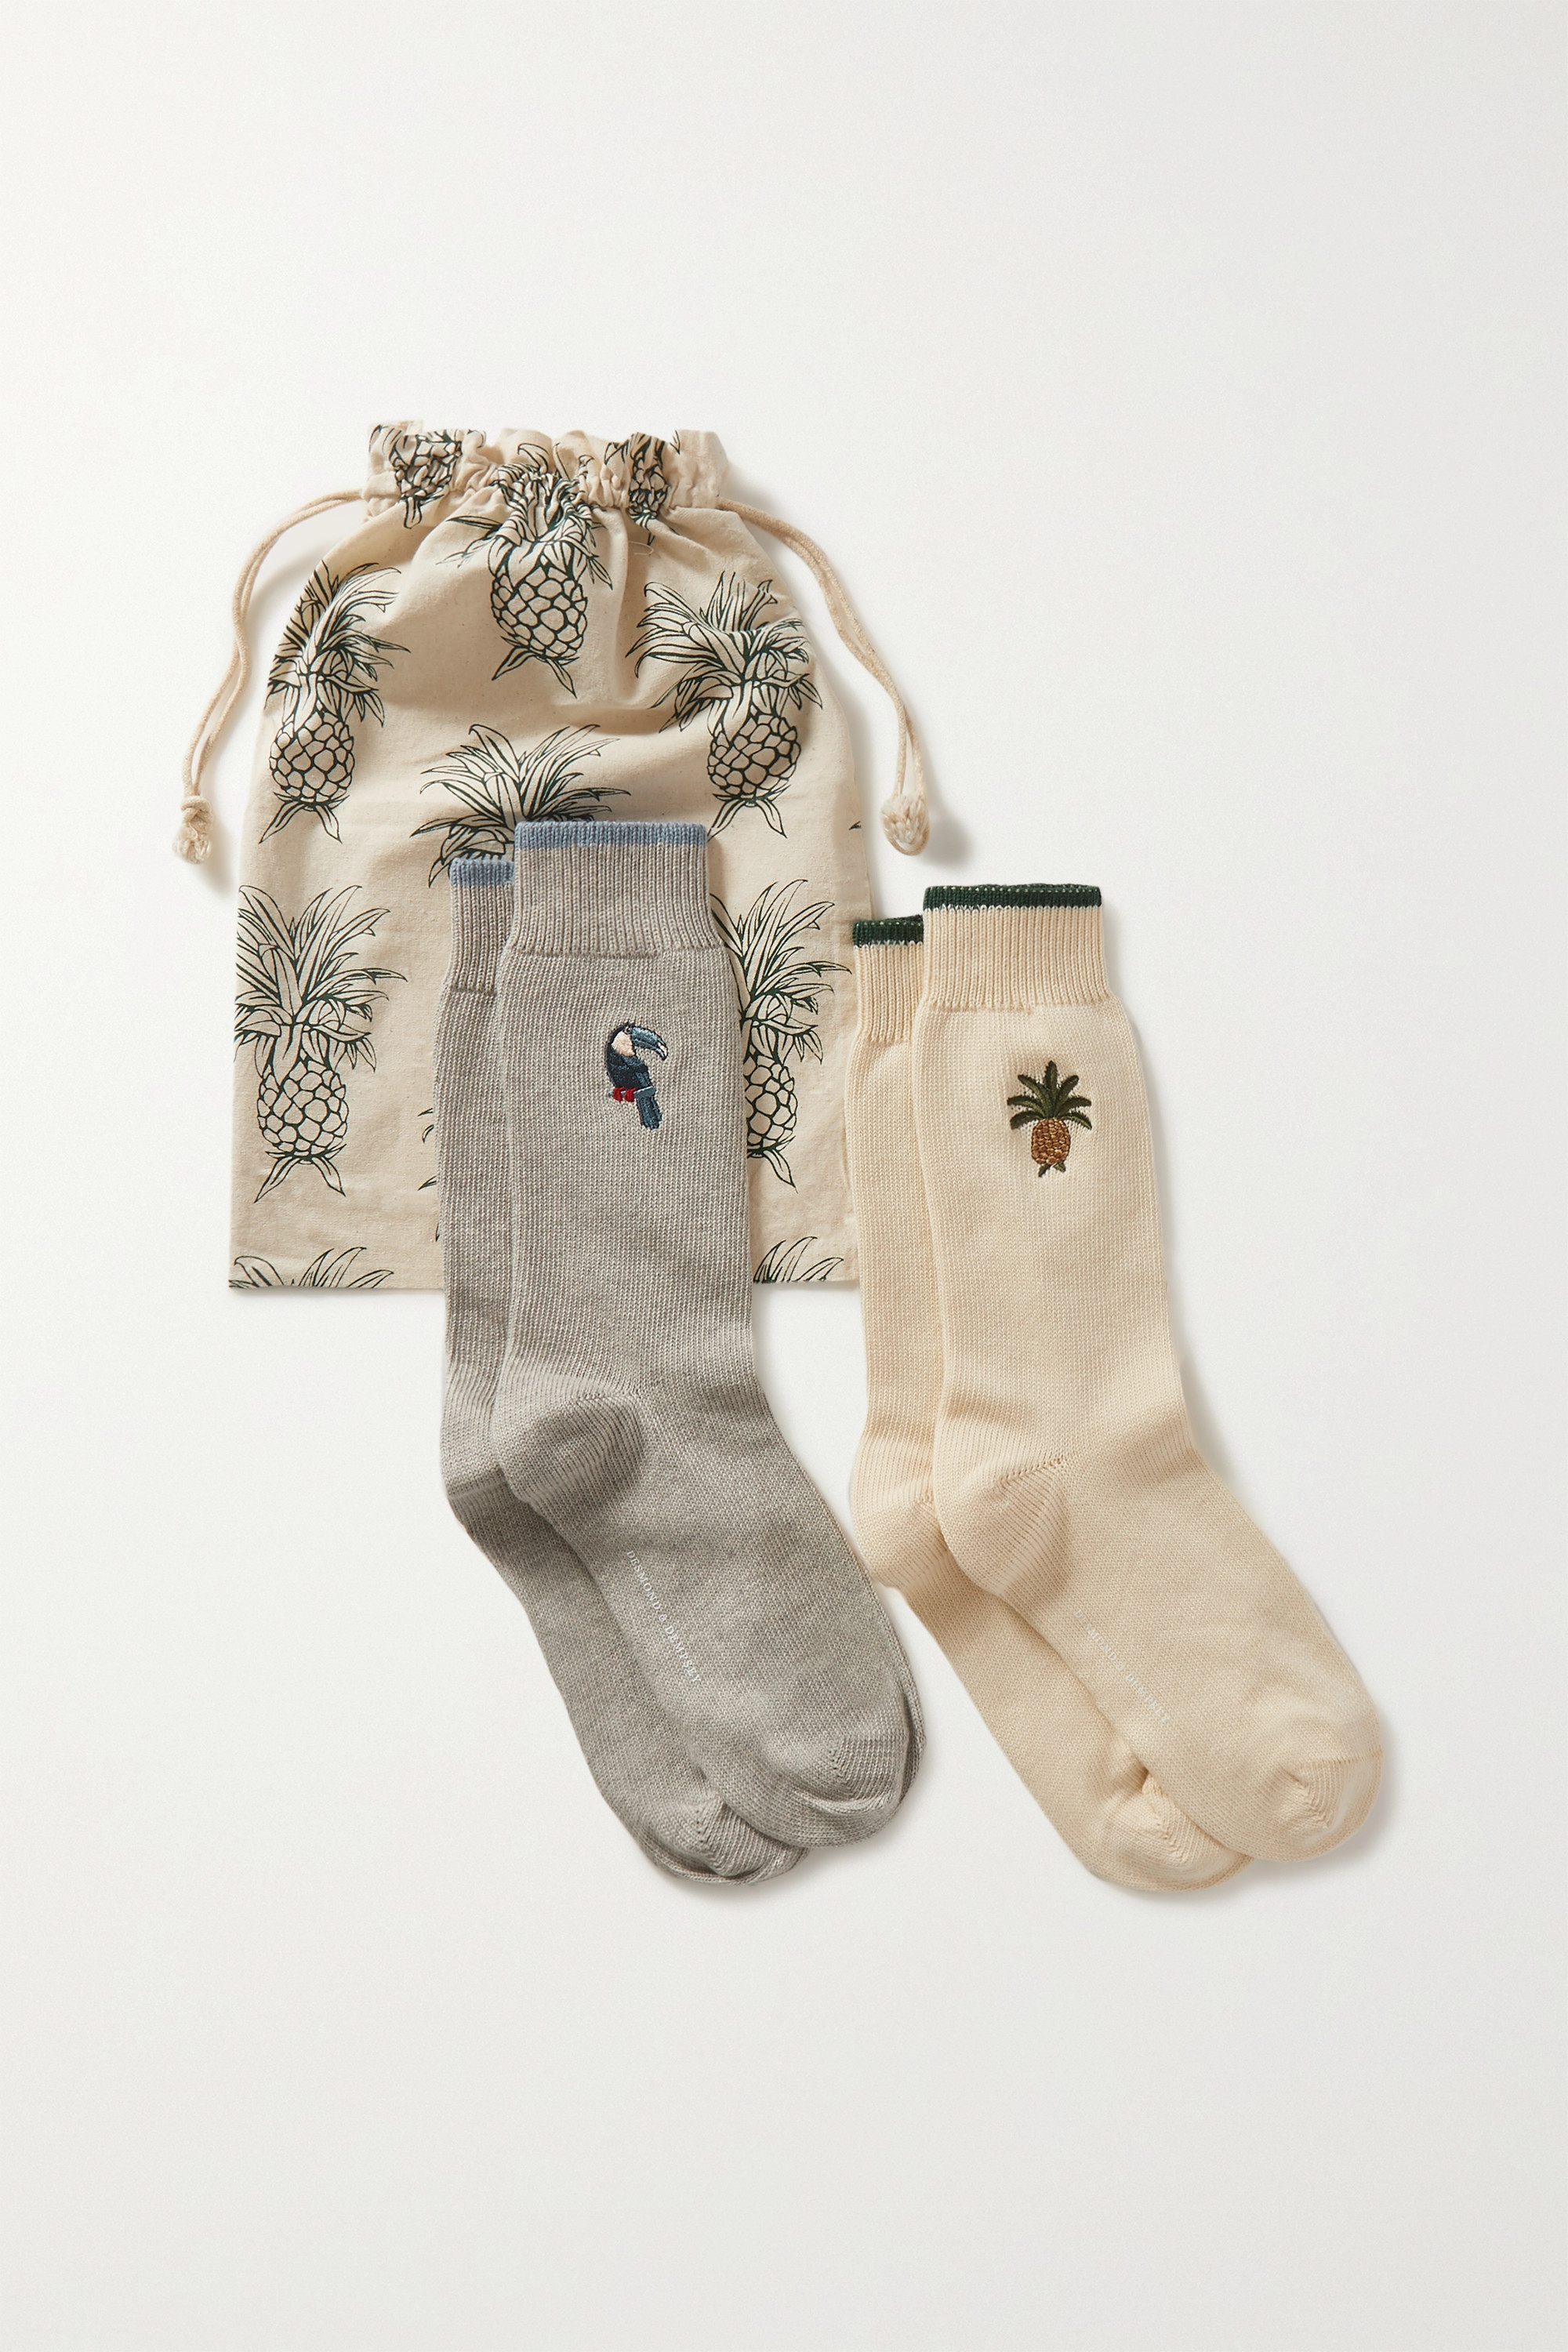 Desmond & Dempsey Howie and Bocas set of two embroidered cotton-blend socks